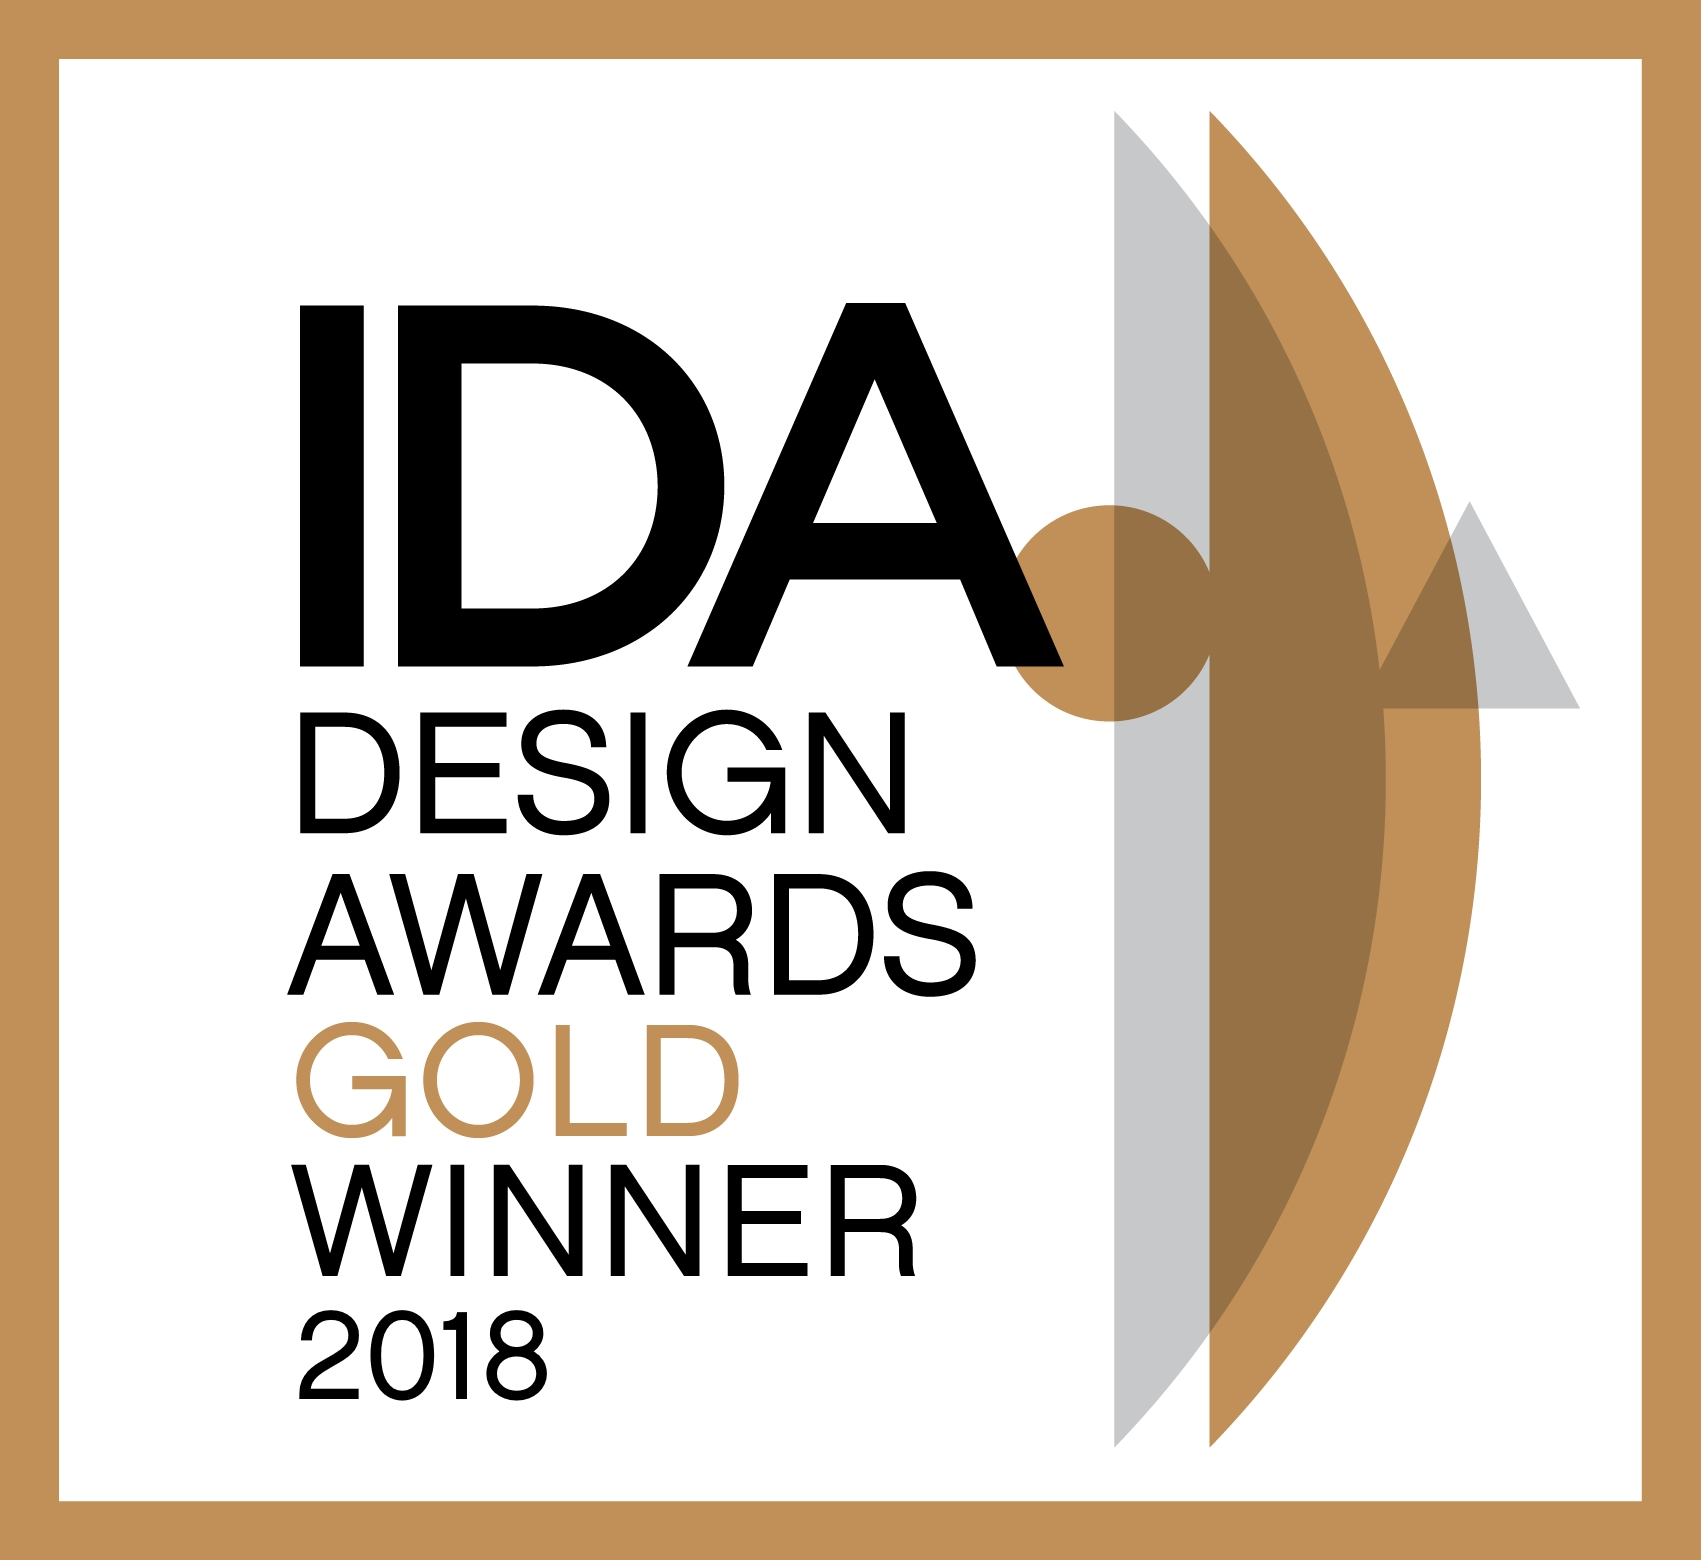 International Design Awards -